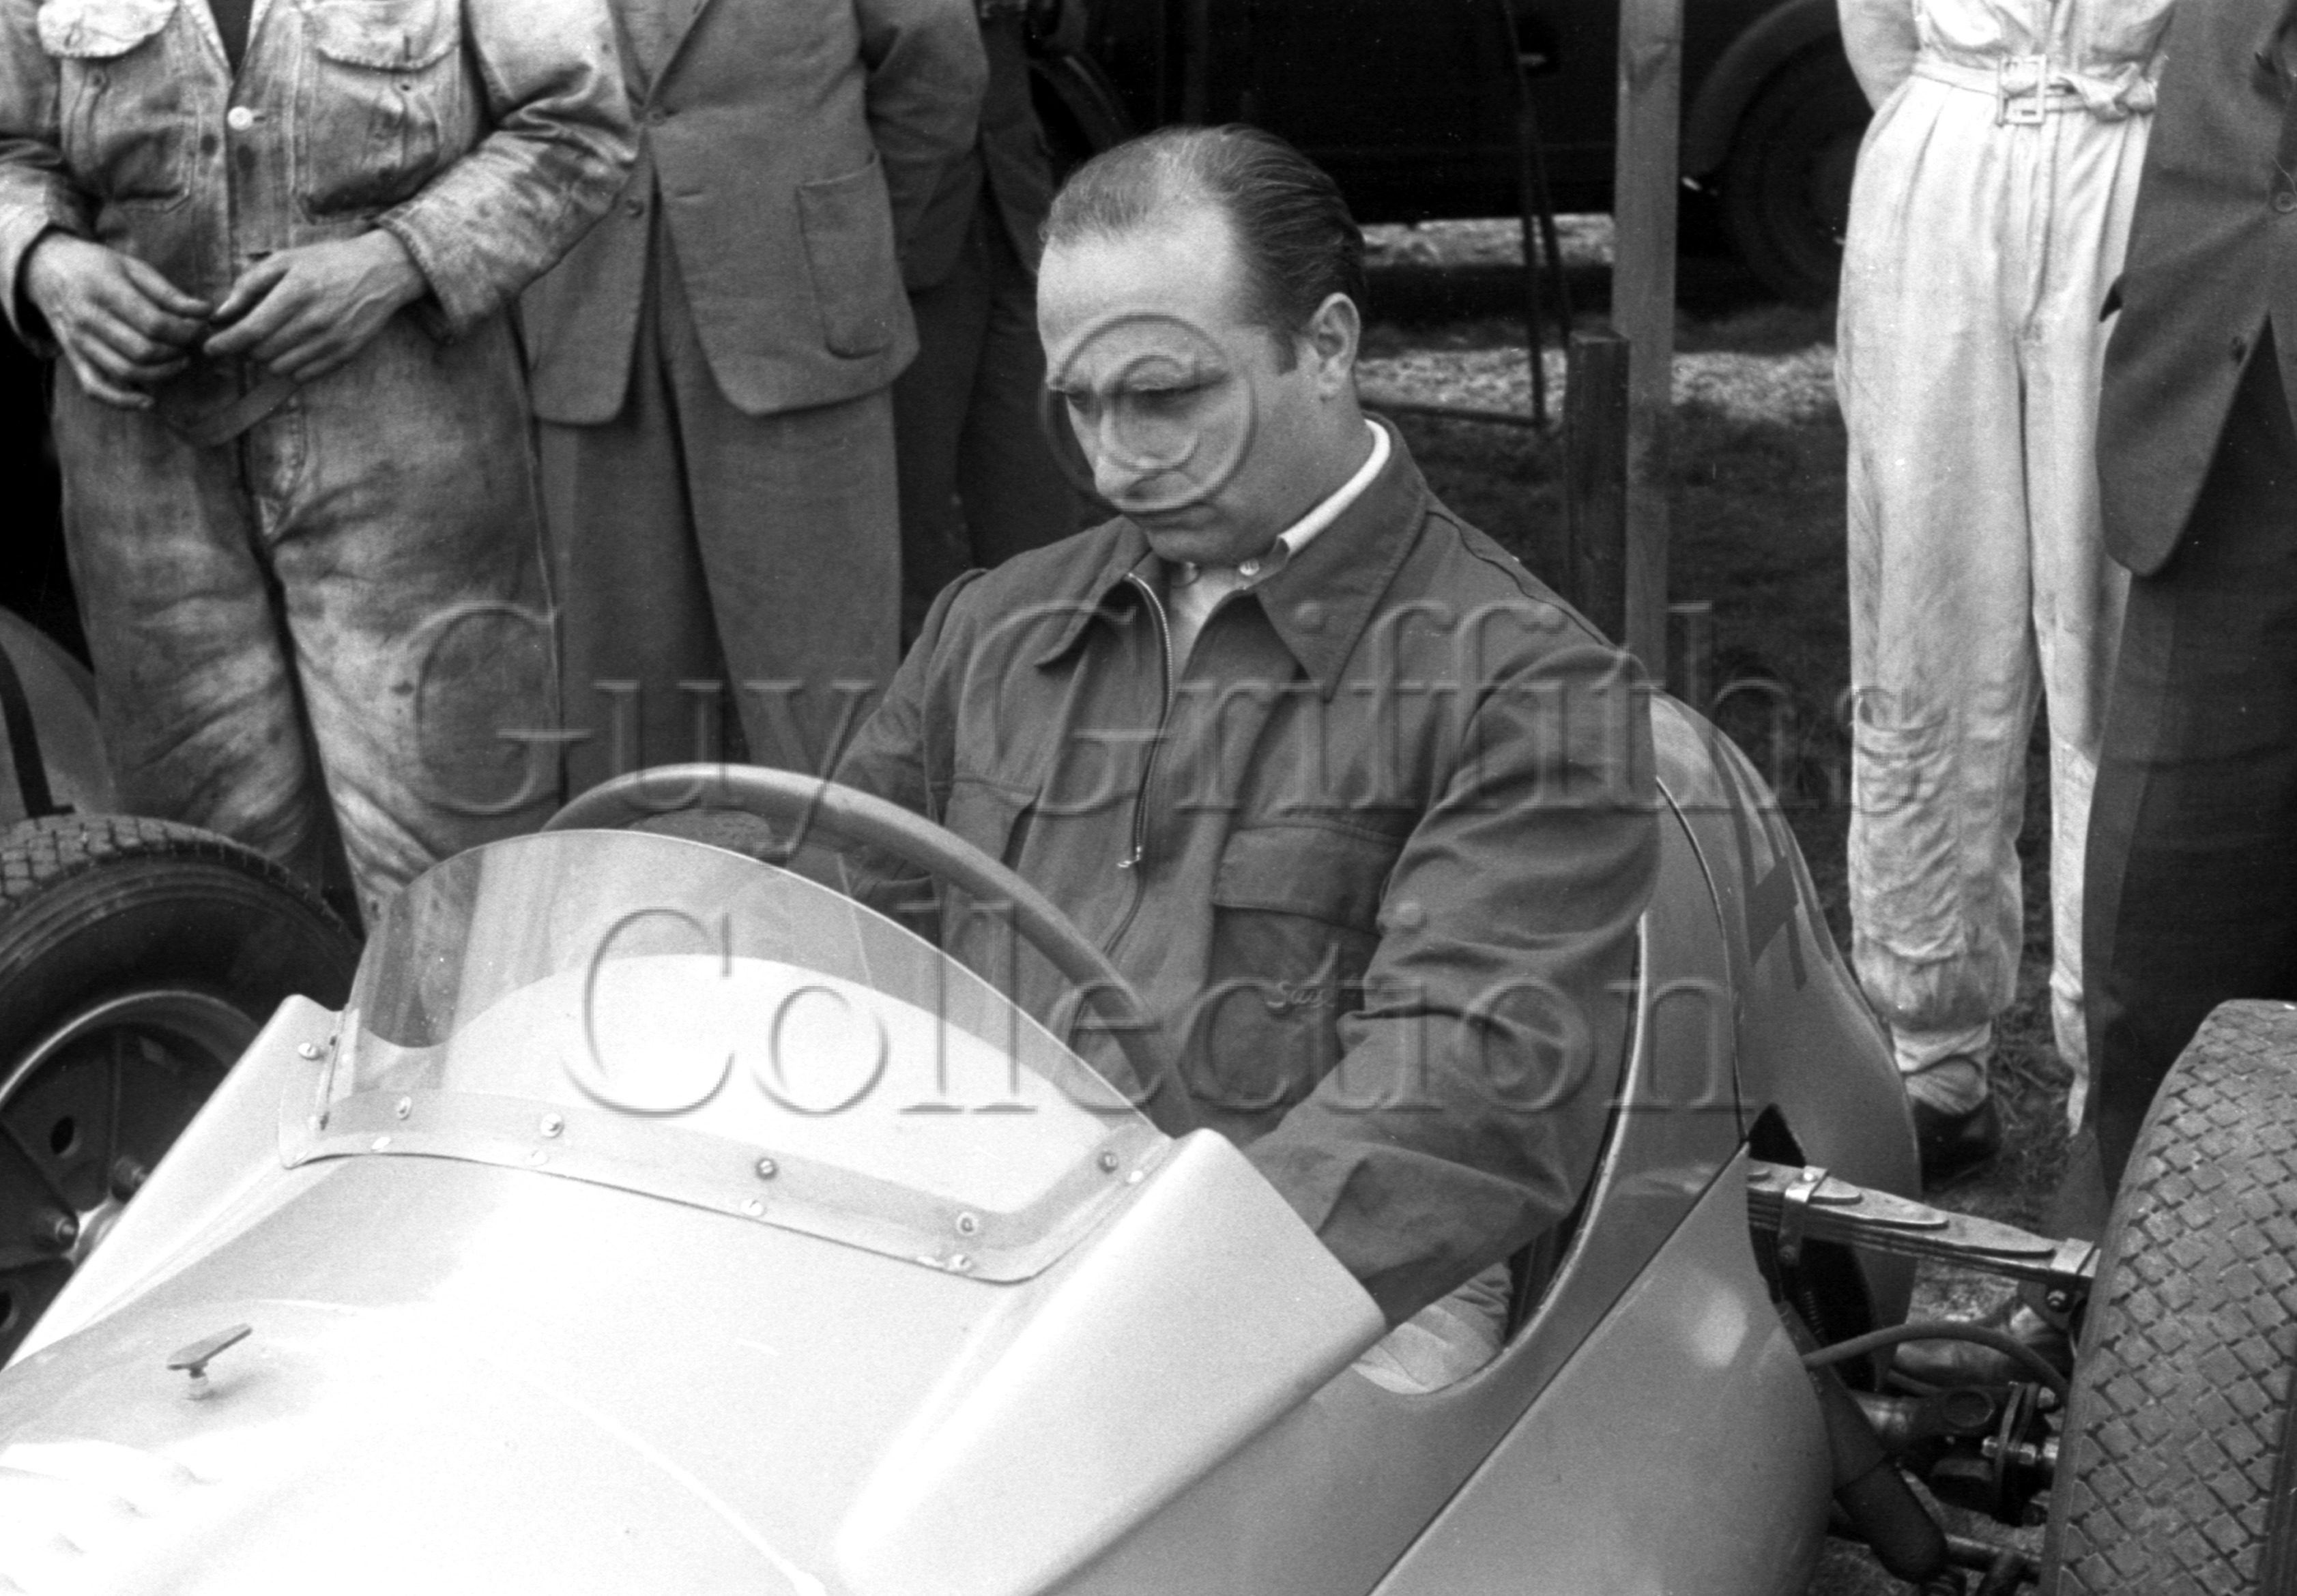 53-124–J-Fangio–Goodwood–14-04-1952.jpg - The Guy Griffiths Collection